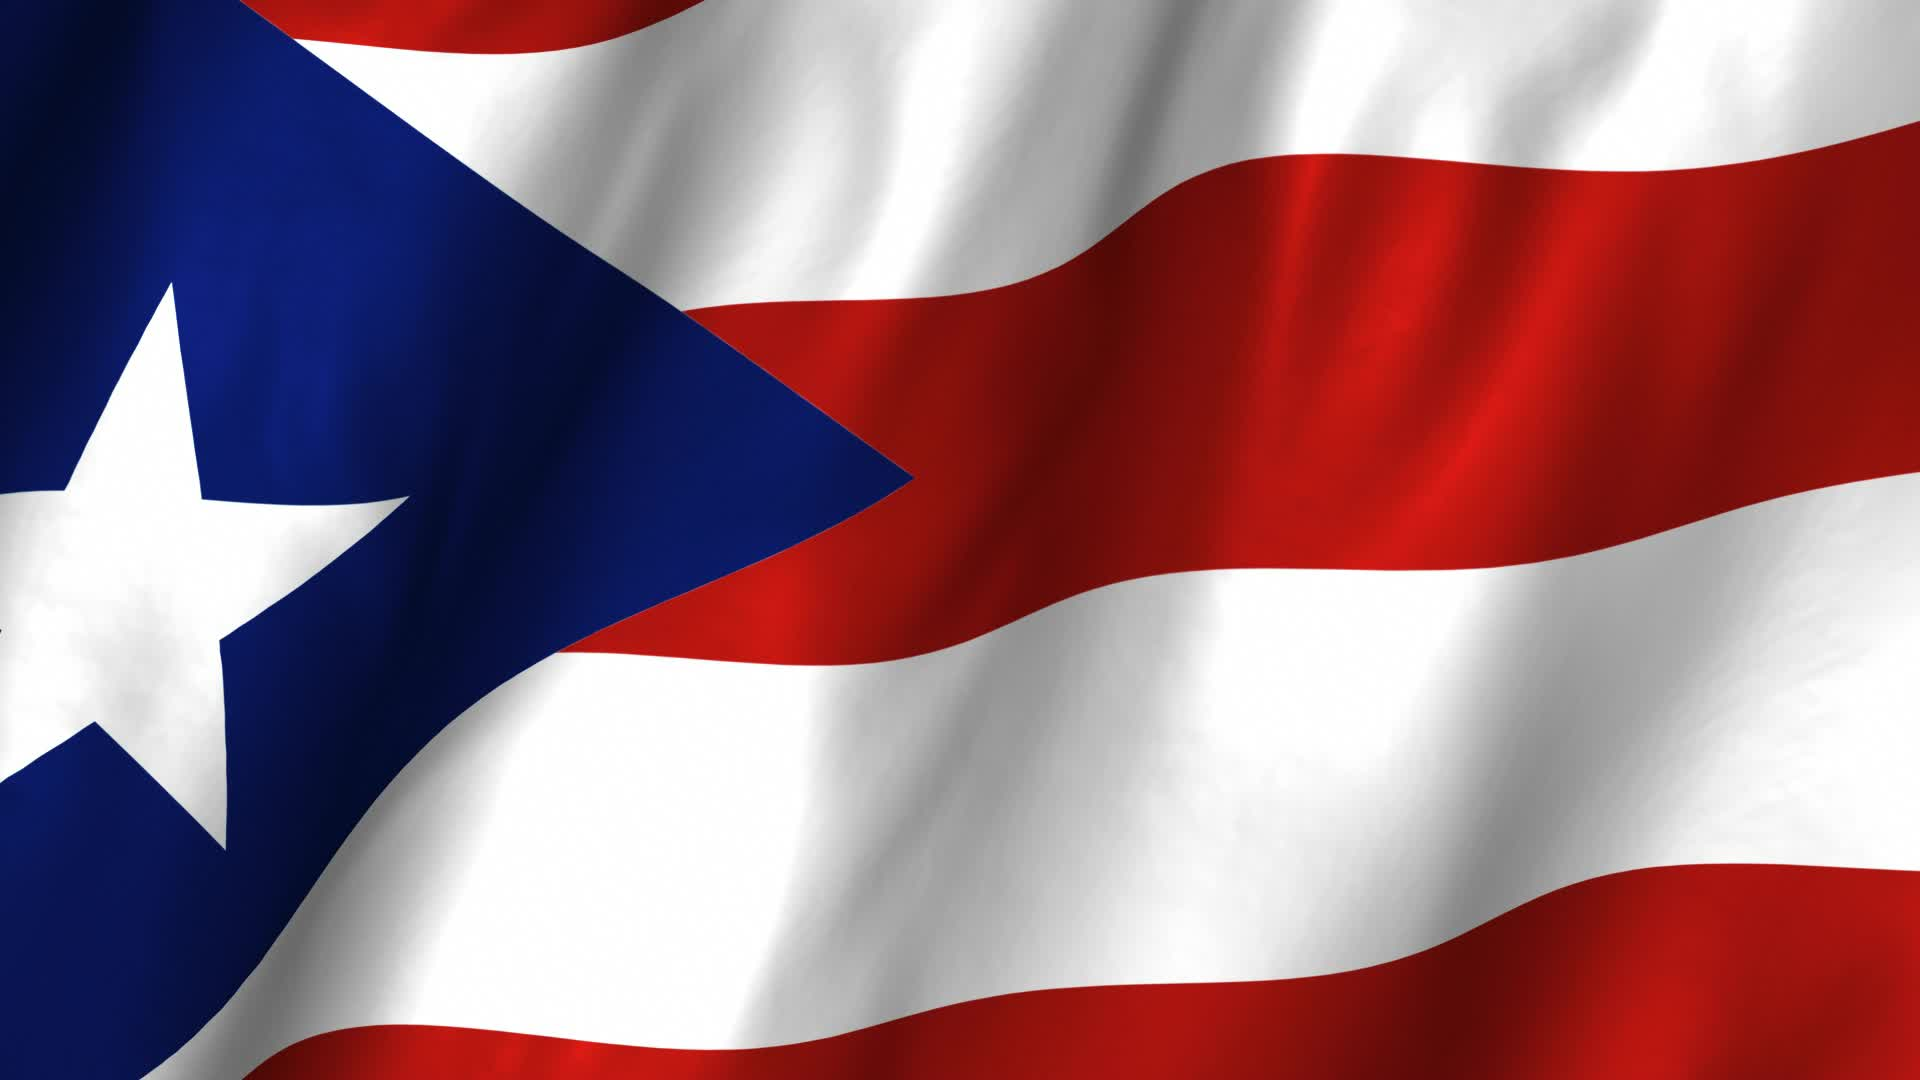 HQ Flag Of Puerto Rico Wallpapers | File 46.25Kb